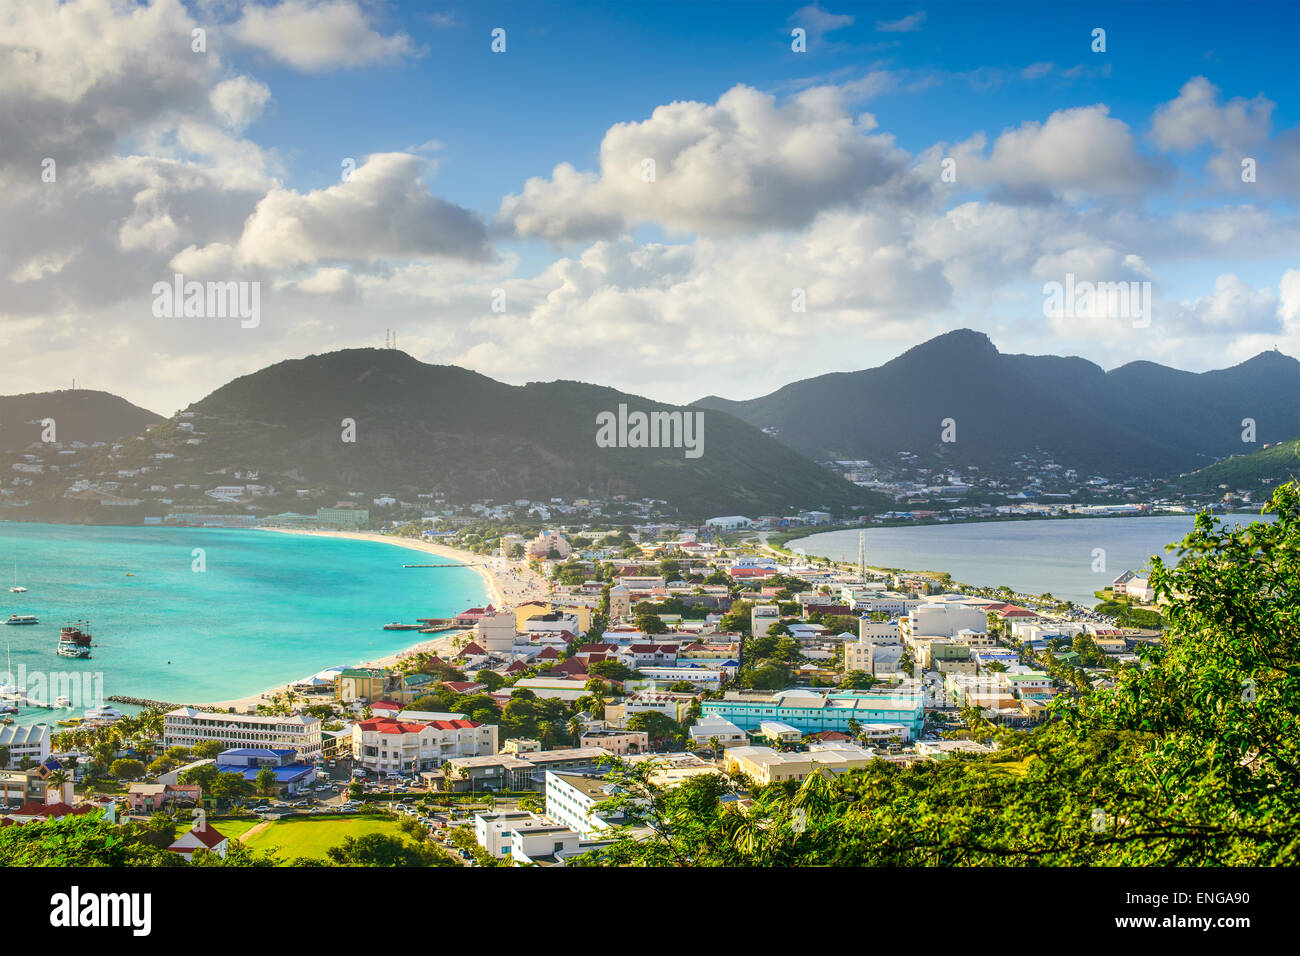 Philipsburg, Sint Maarten, cityscape at the Great Salt Pond. - Stock Image